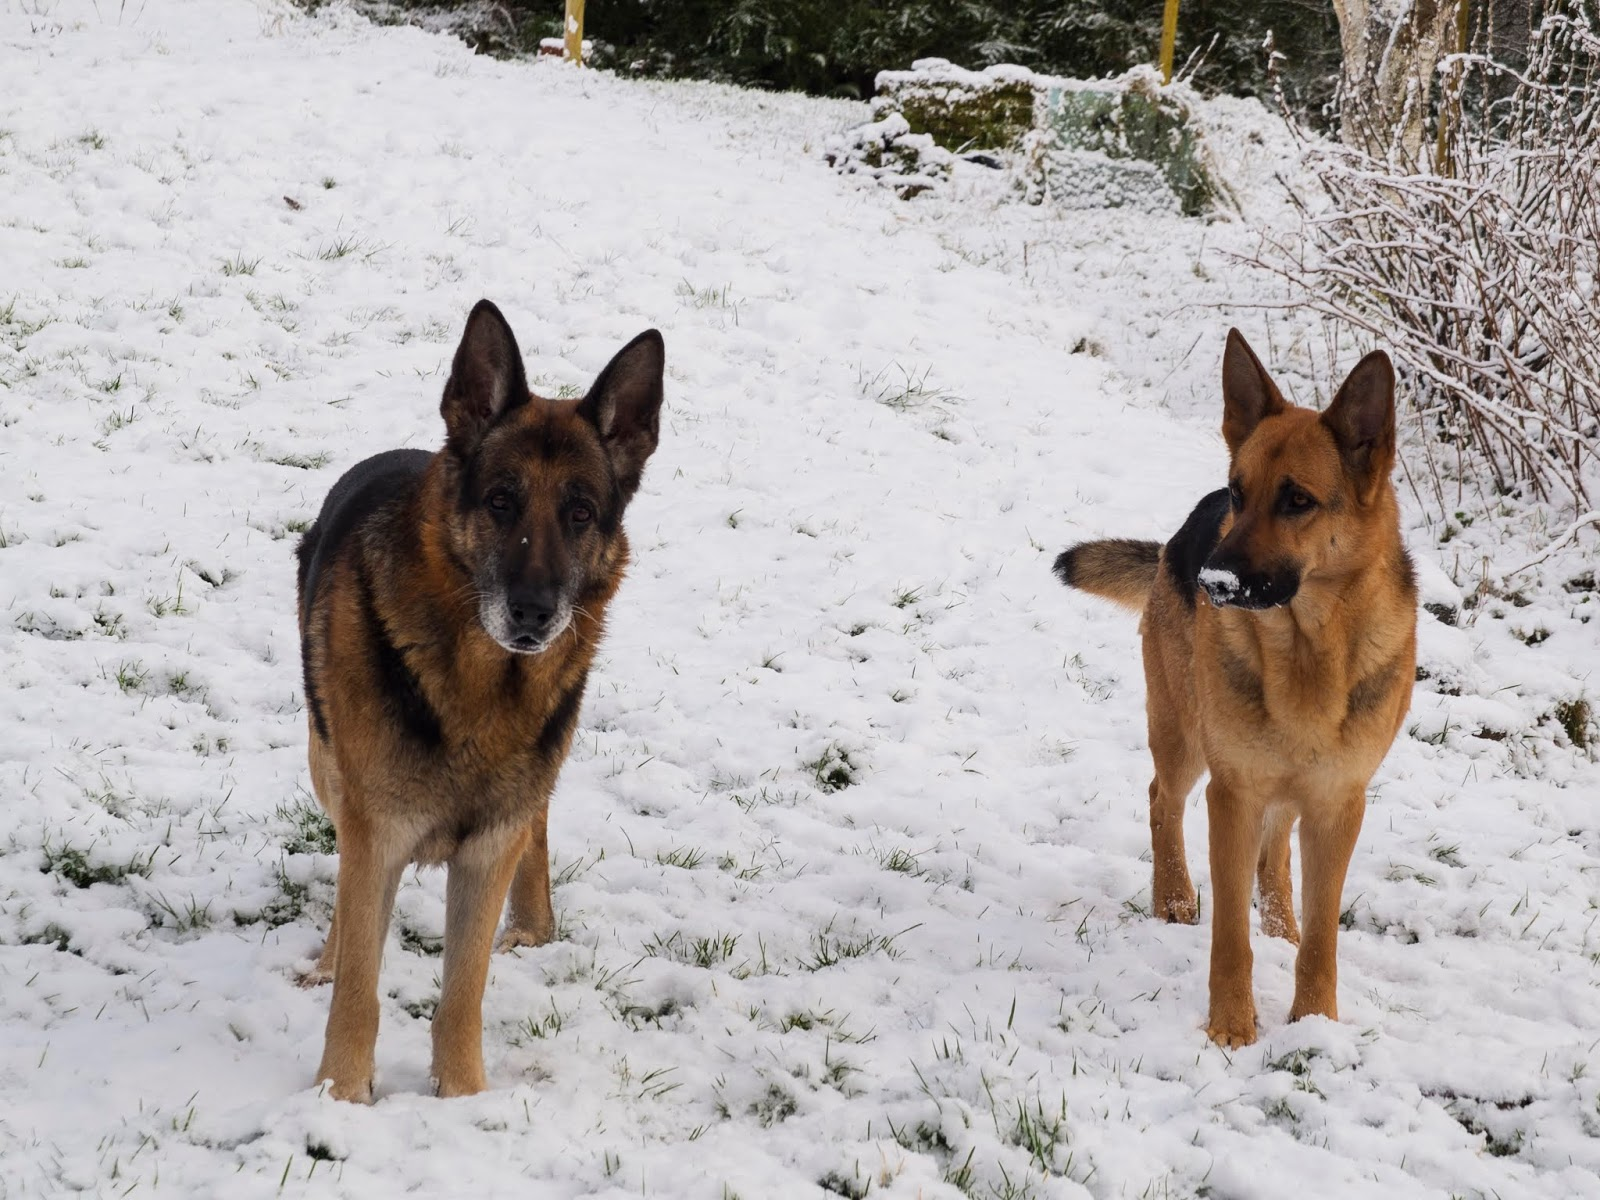 Two German Shepherds Steve and Nala standing on a snowy hillside.